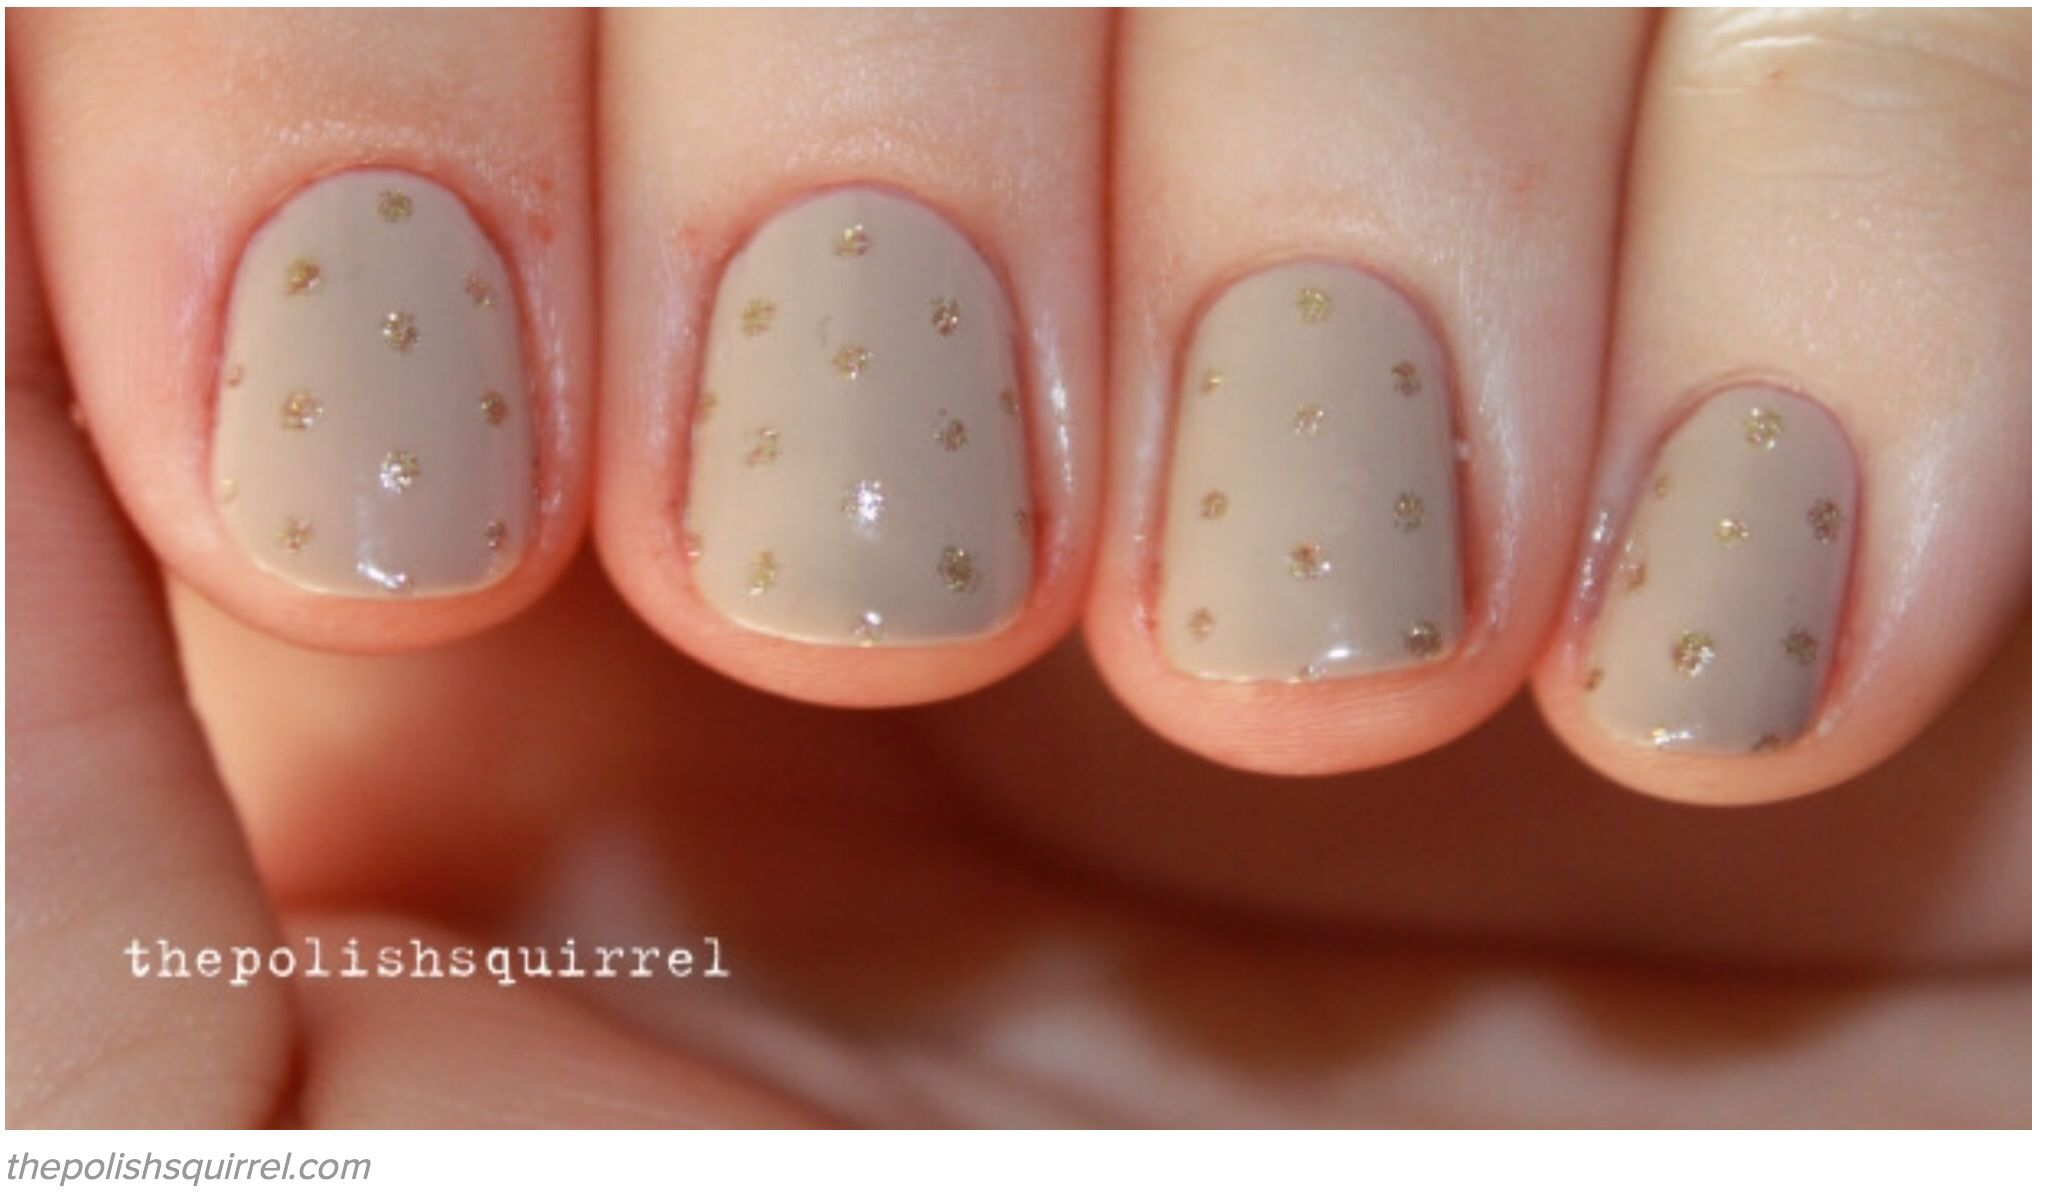 Beige with gold dots belleza de uñas pinterest gold dots